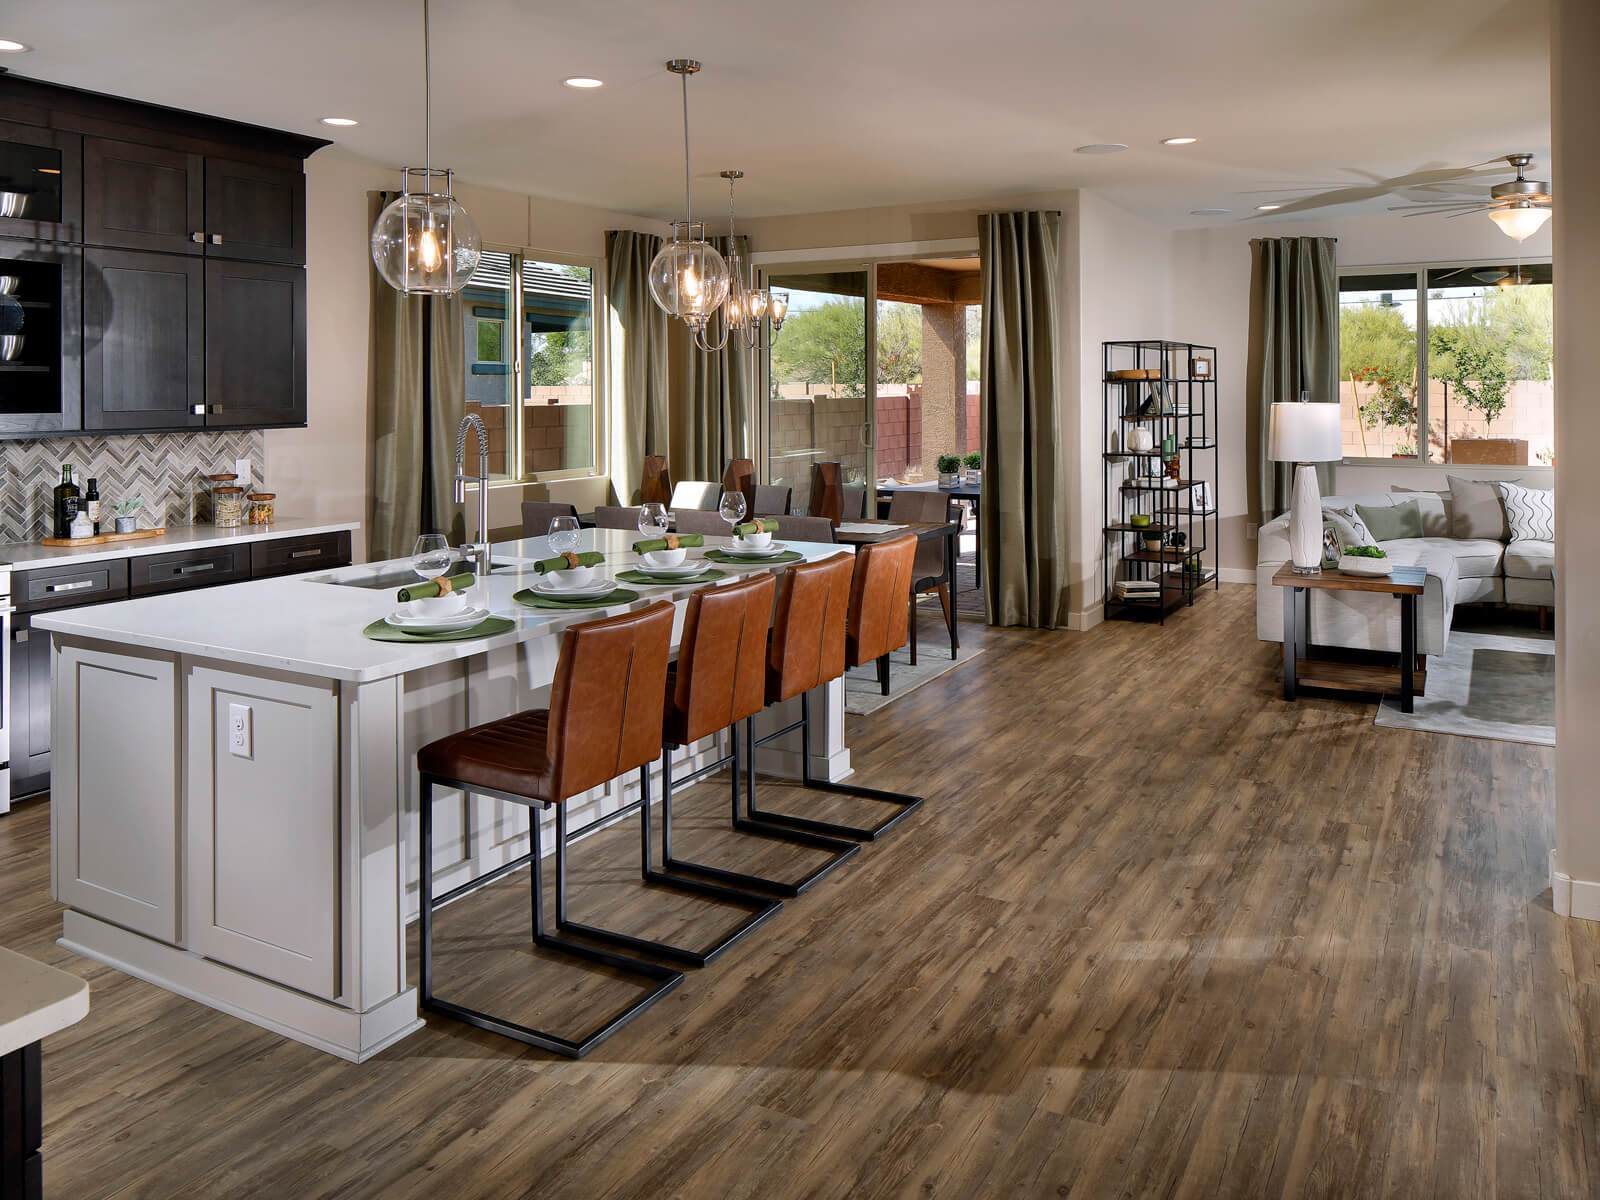 Kitchen featured in the Everett By Meritage Homes in Tucson, AZ